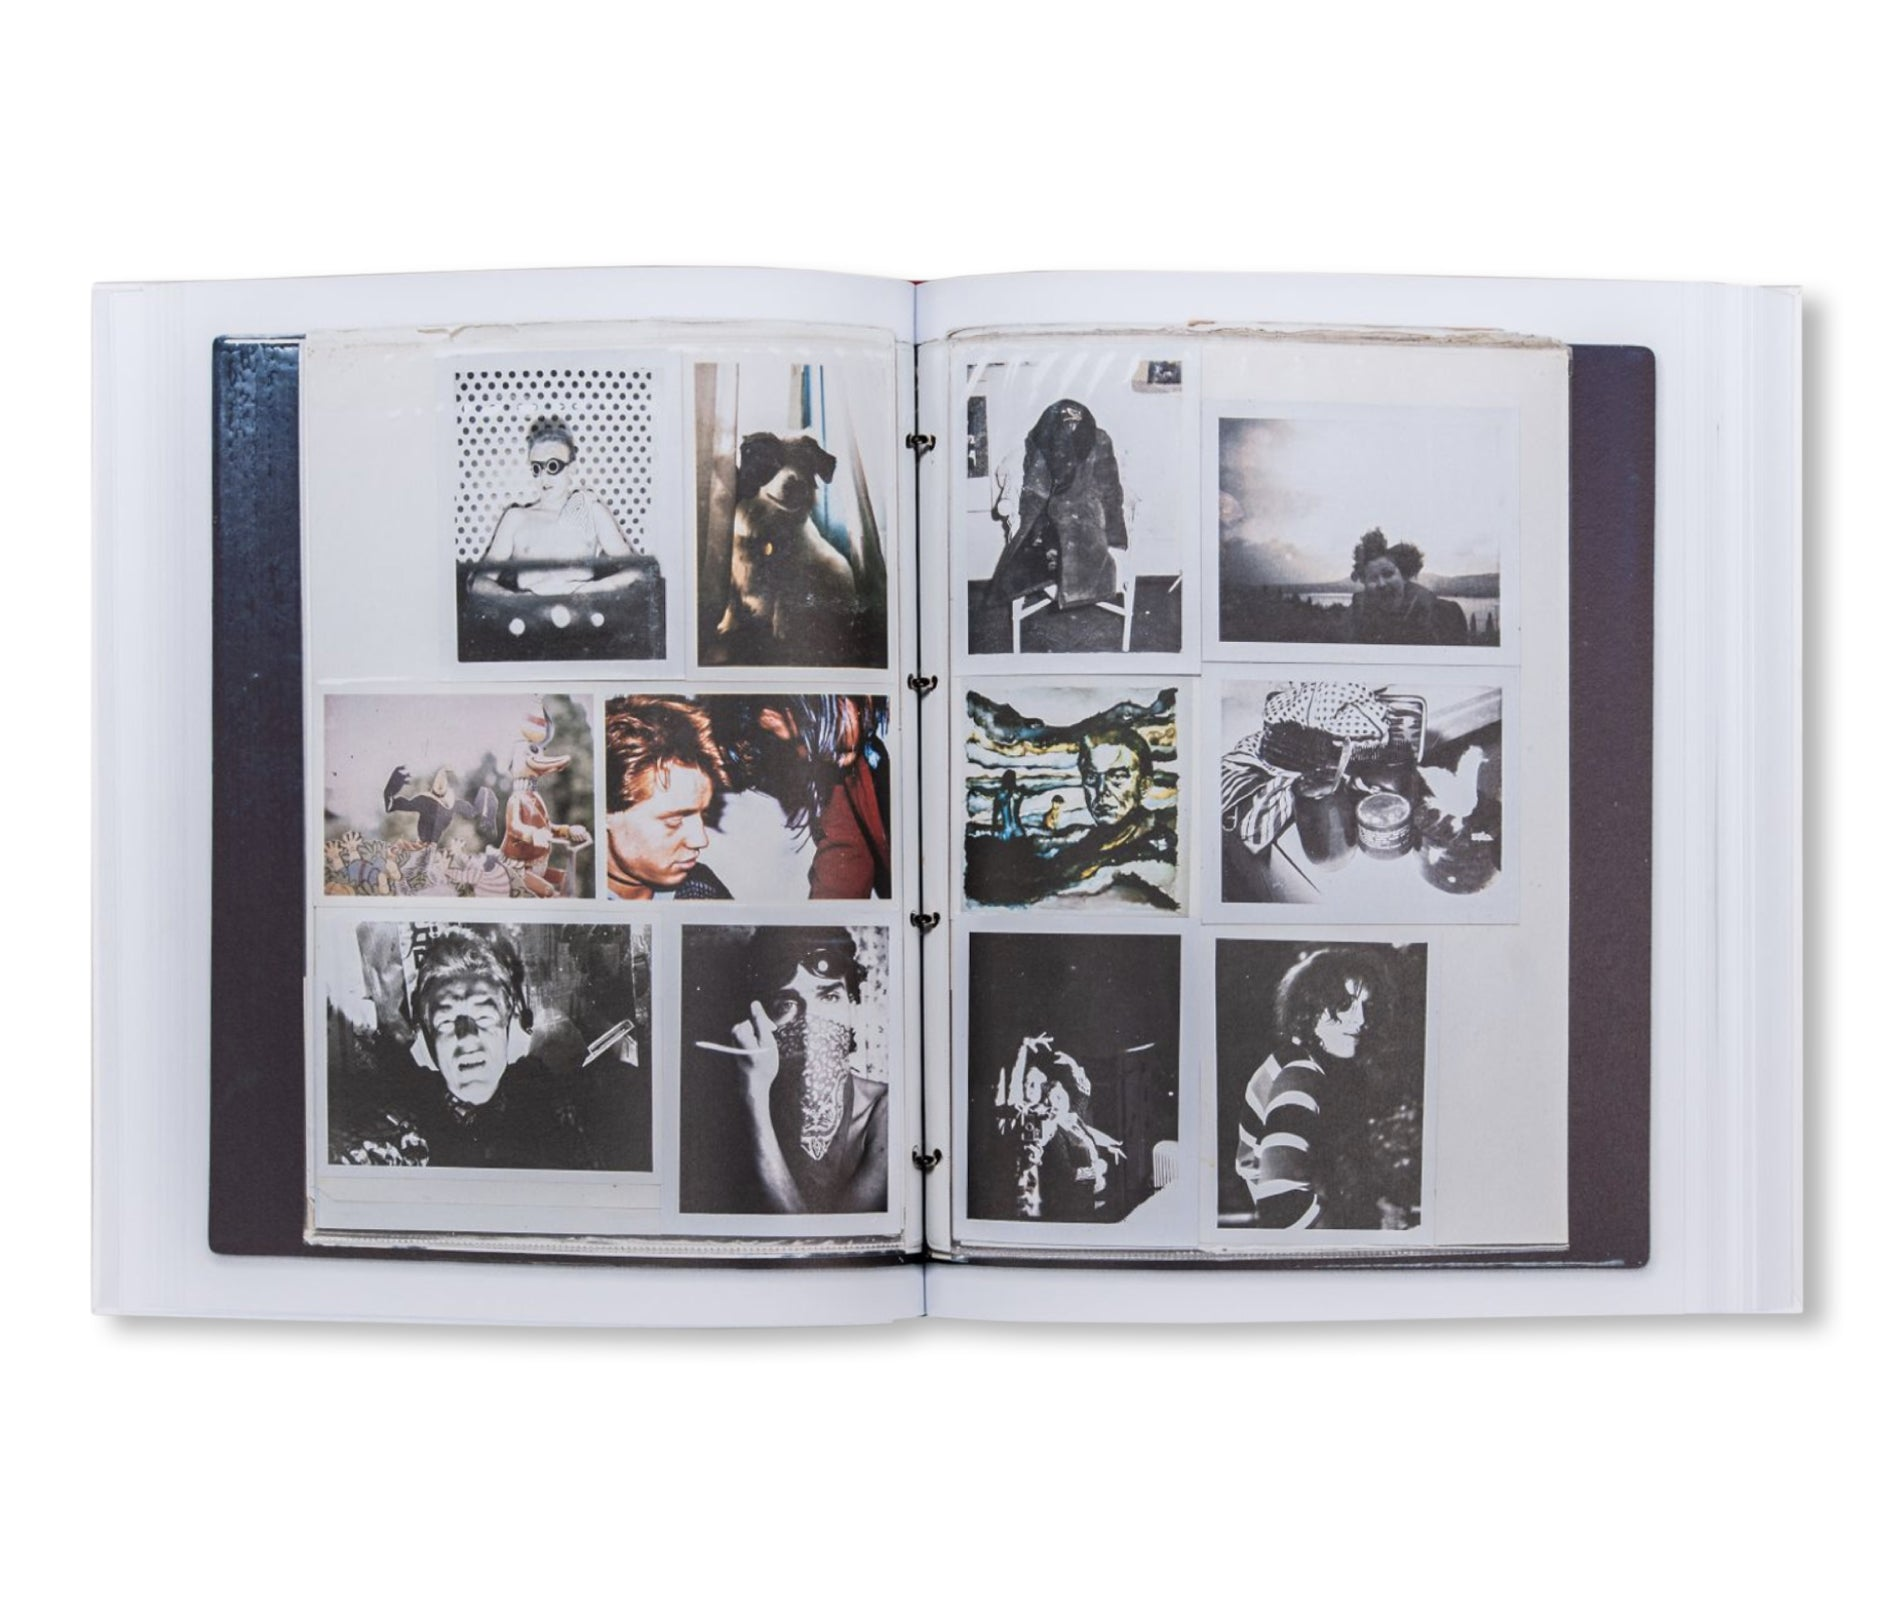 SCRAPBOOKS 1969-1985 by Walter Pfeiffer